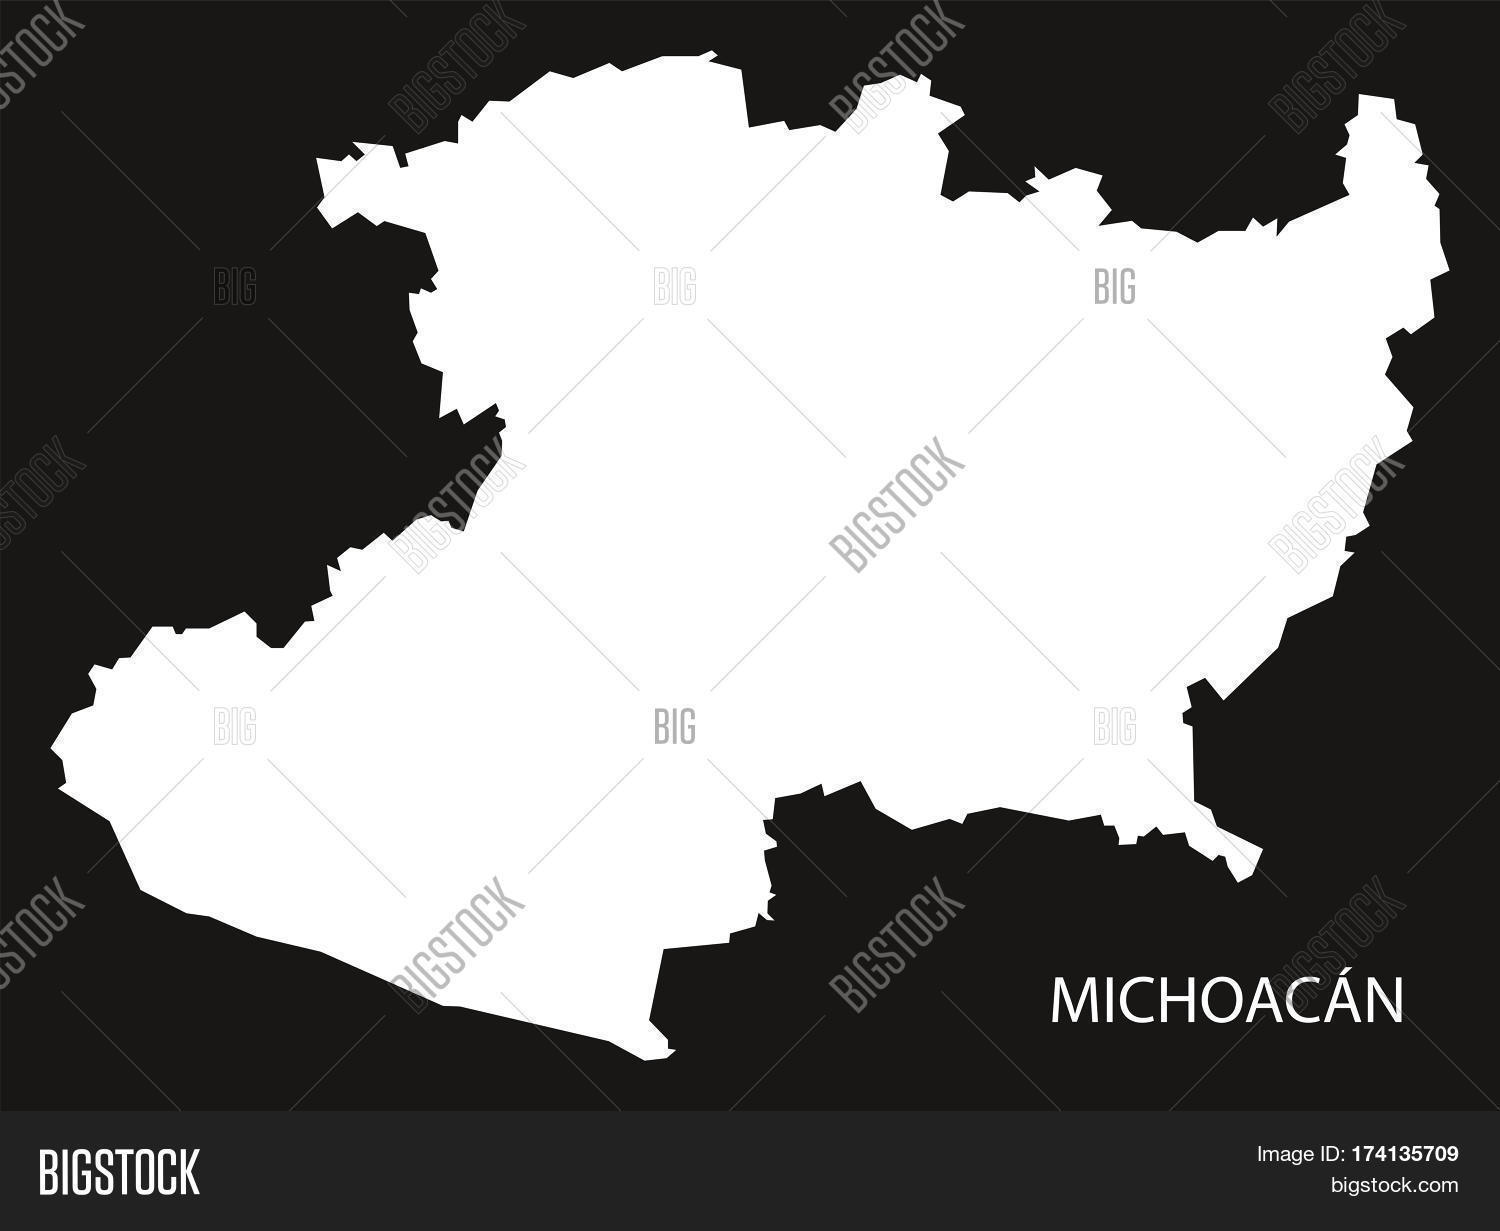 Michoacan Mexico Map Image & Photo (Free Trial) | Bigstock